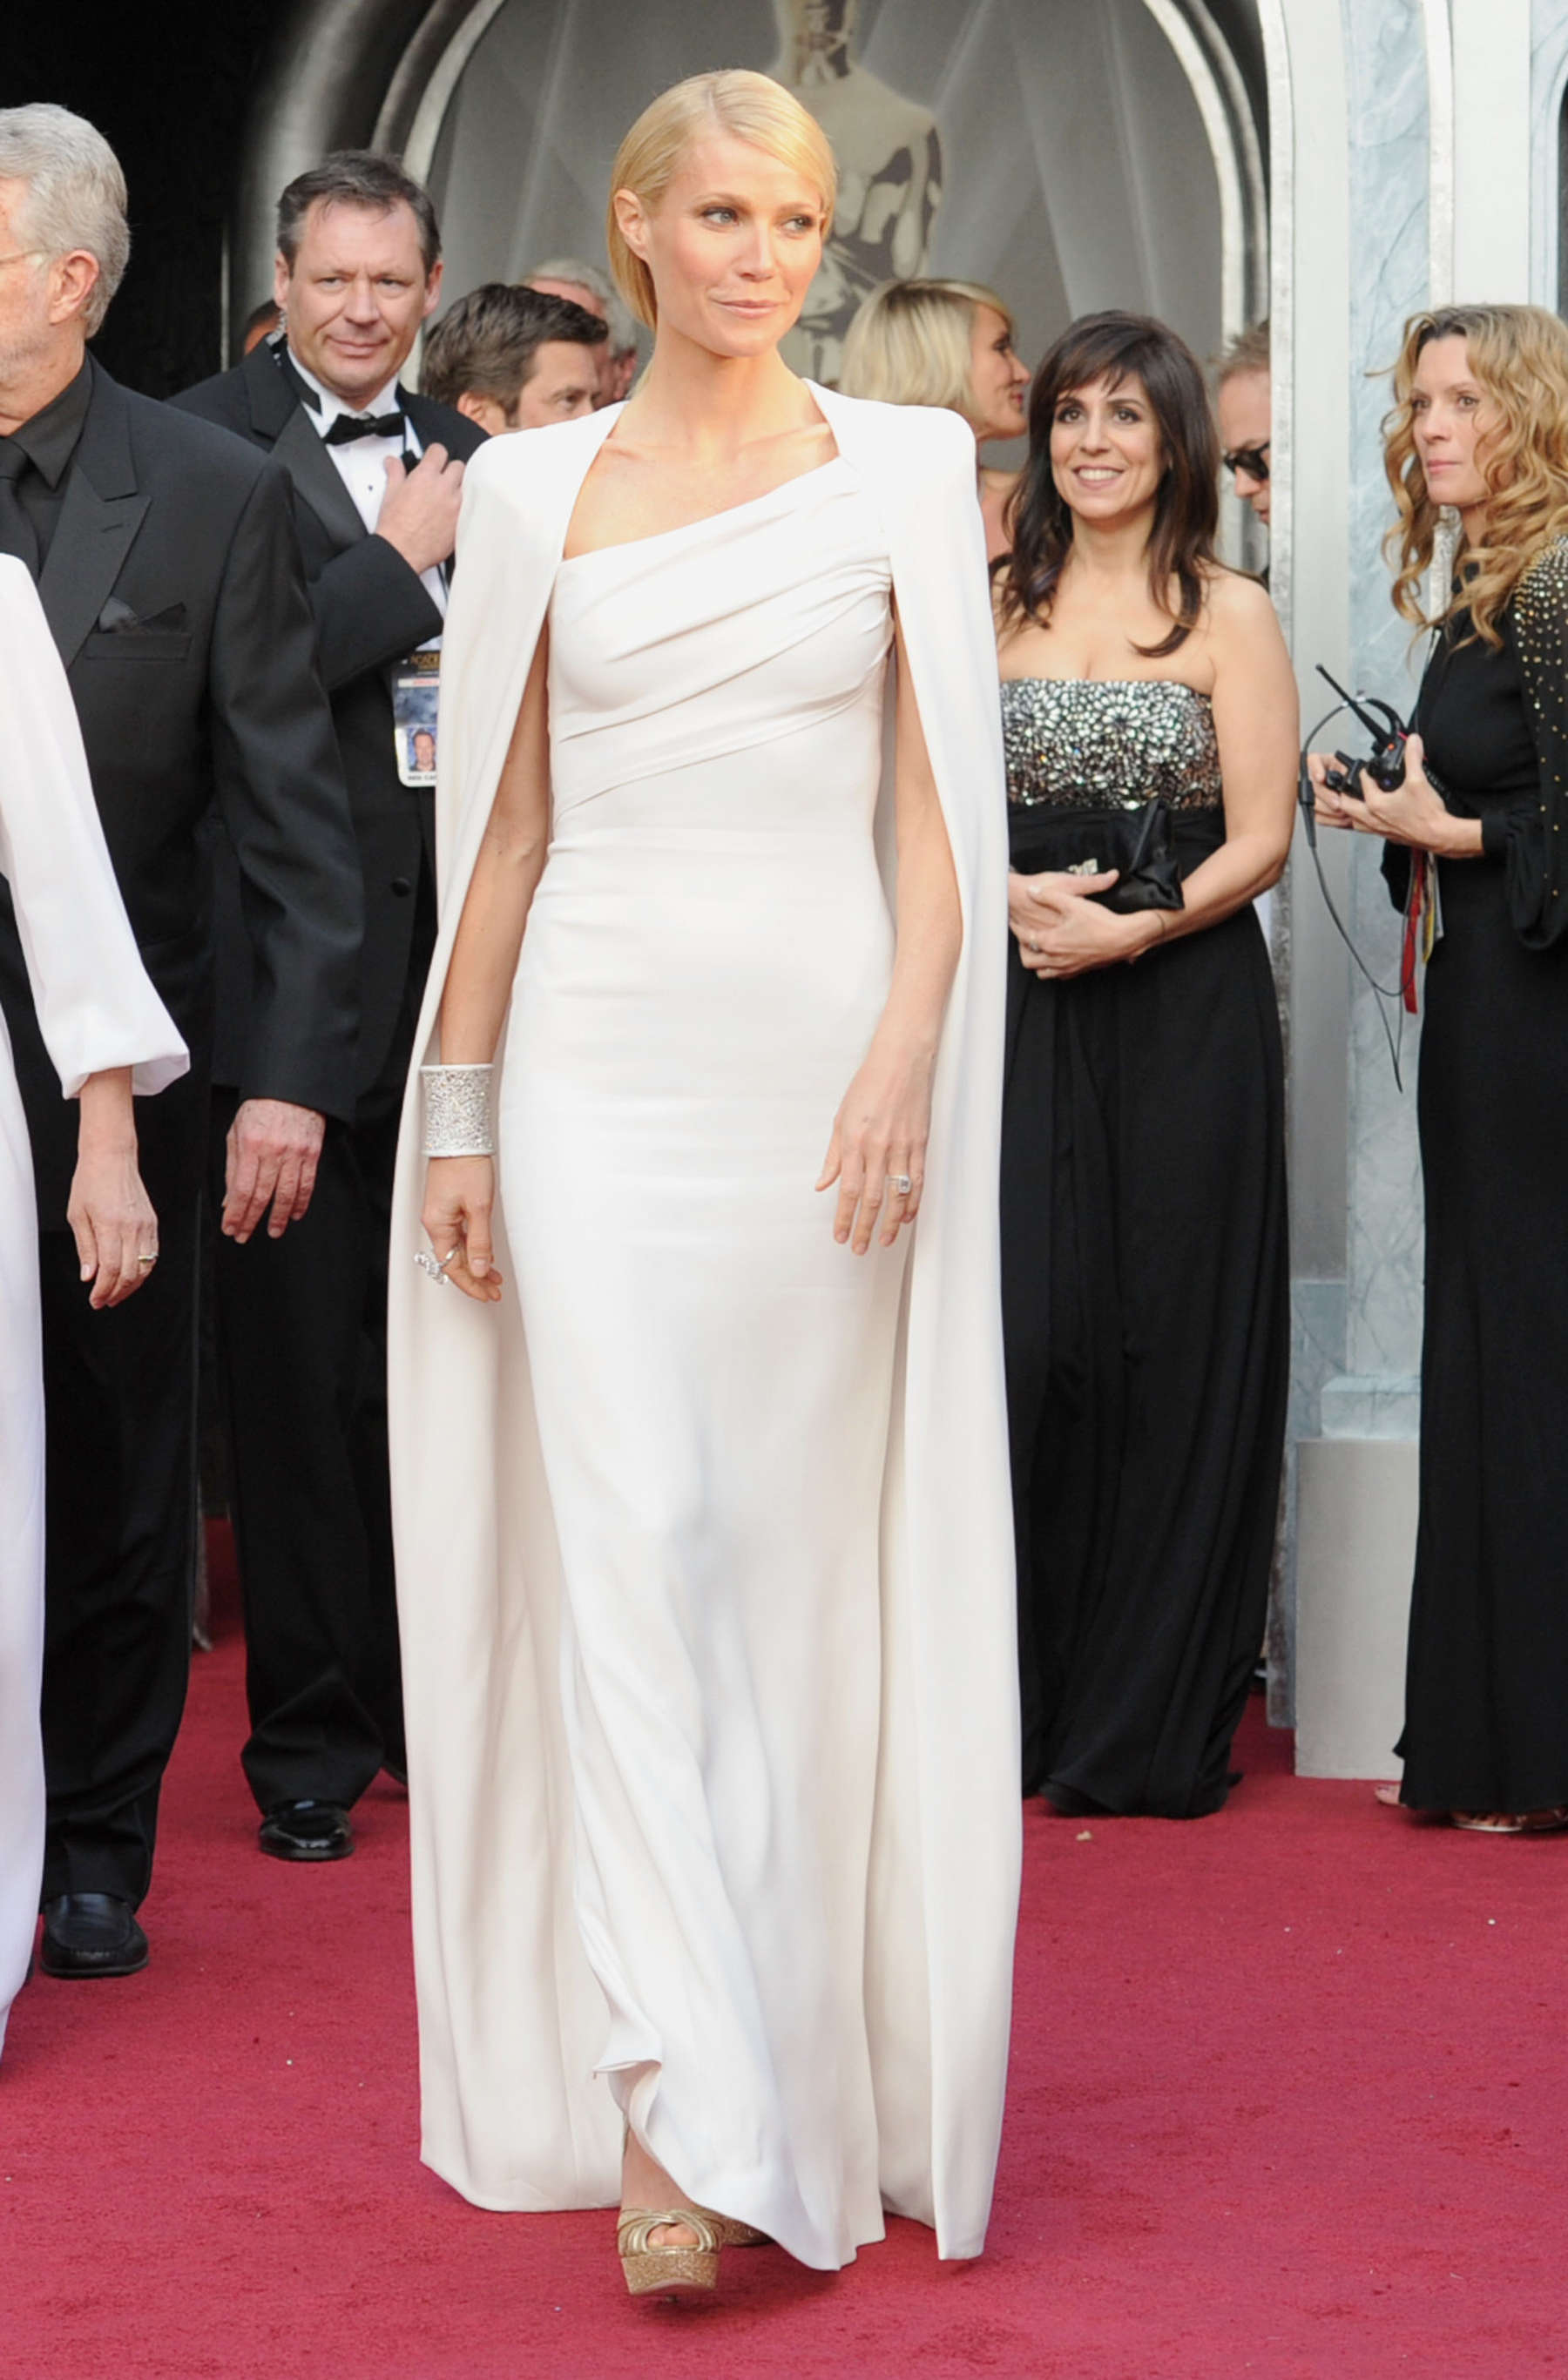 Gwyneth Paltrow opens up about her Oscars fashion disasters pics